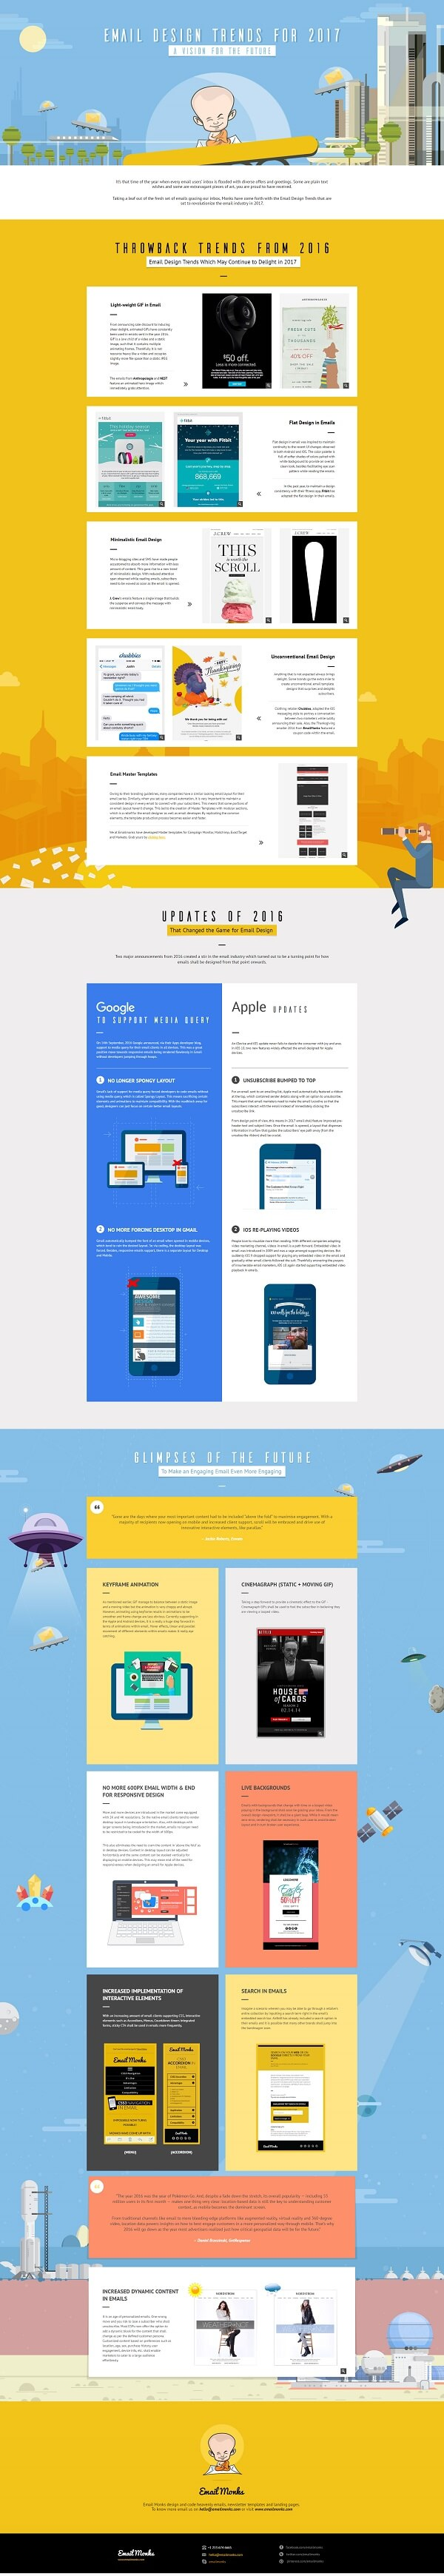 Email Marketing Design Trends 2017